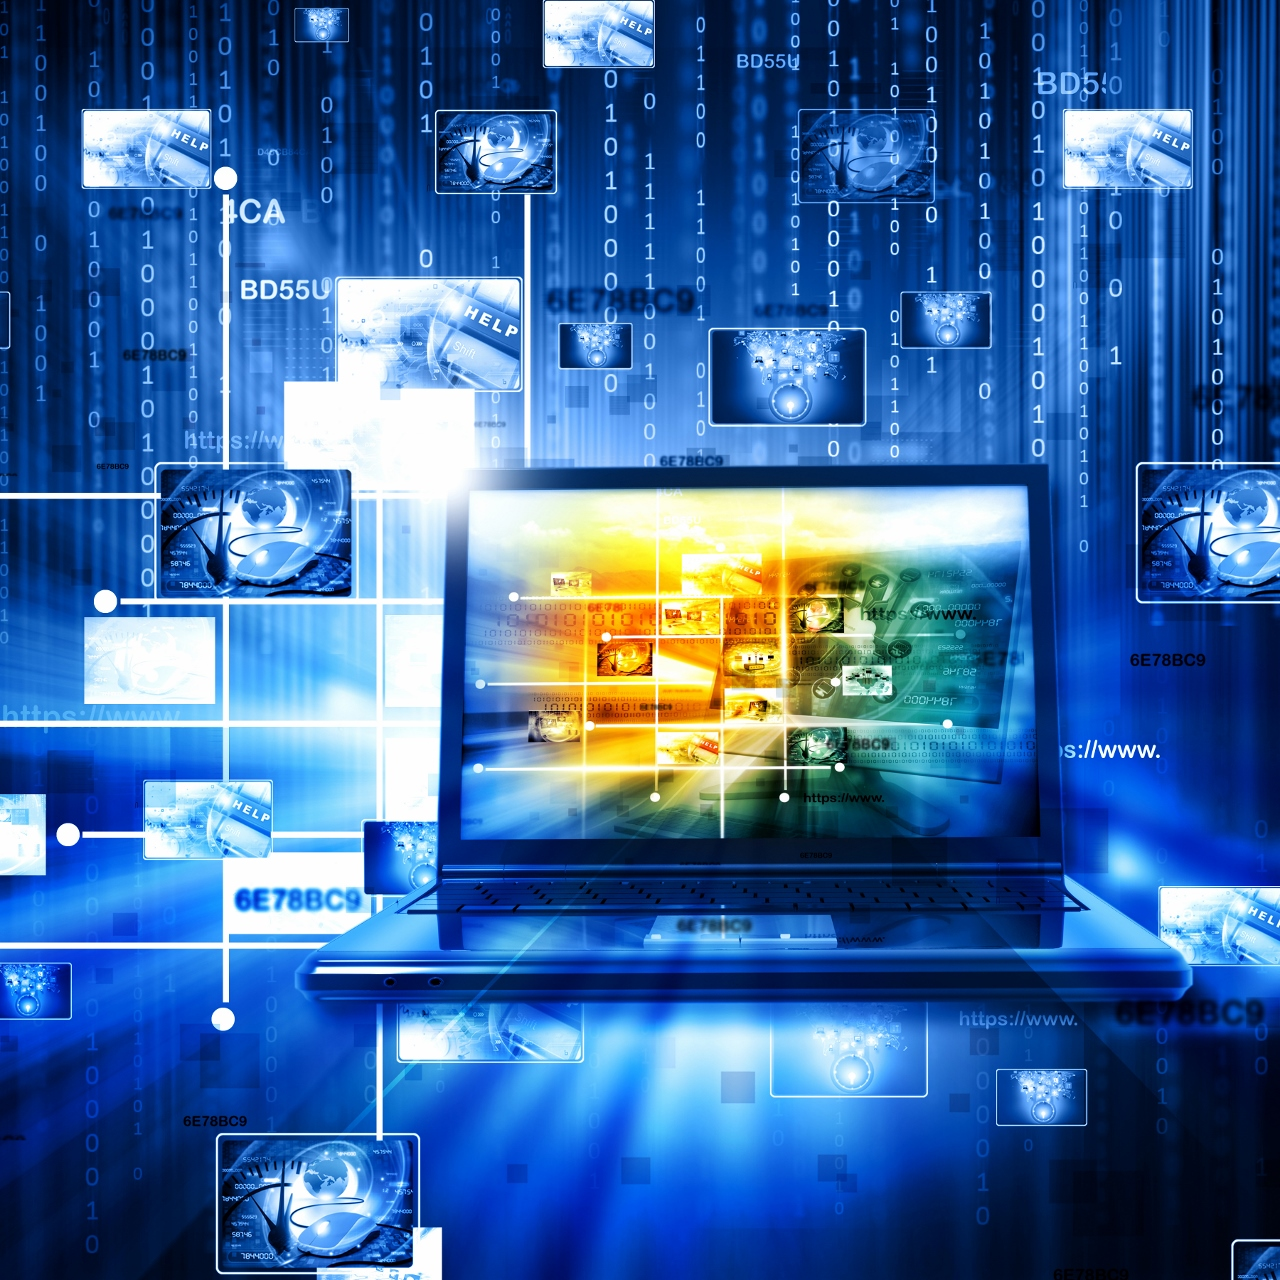 CGU Launches Revolutionary New Cyber Product into the Austra